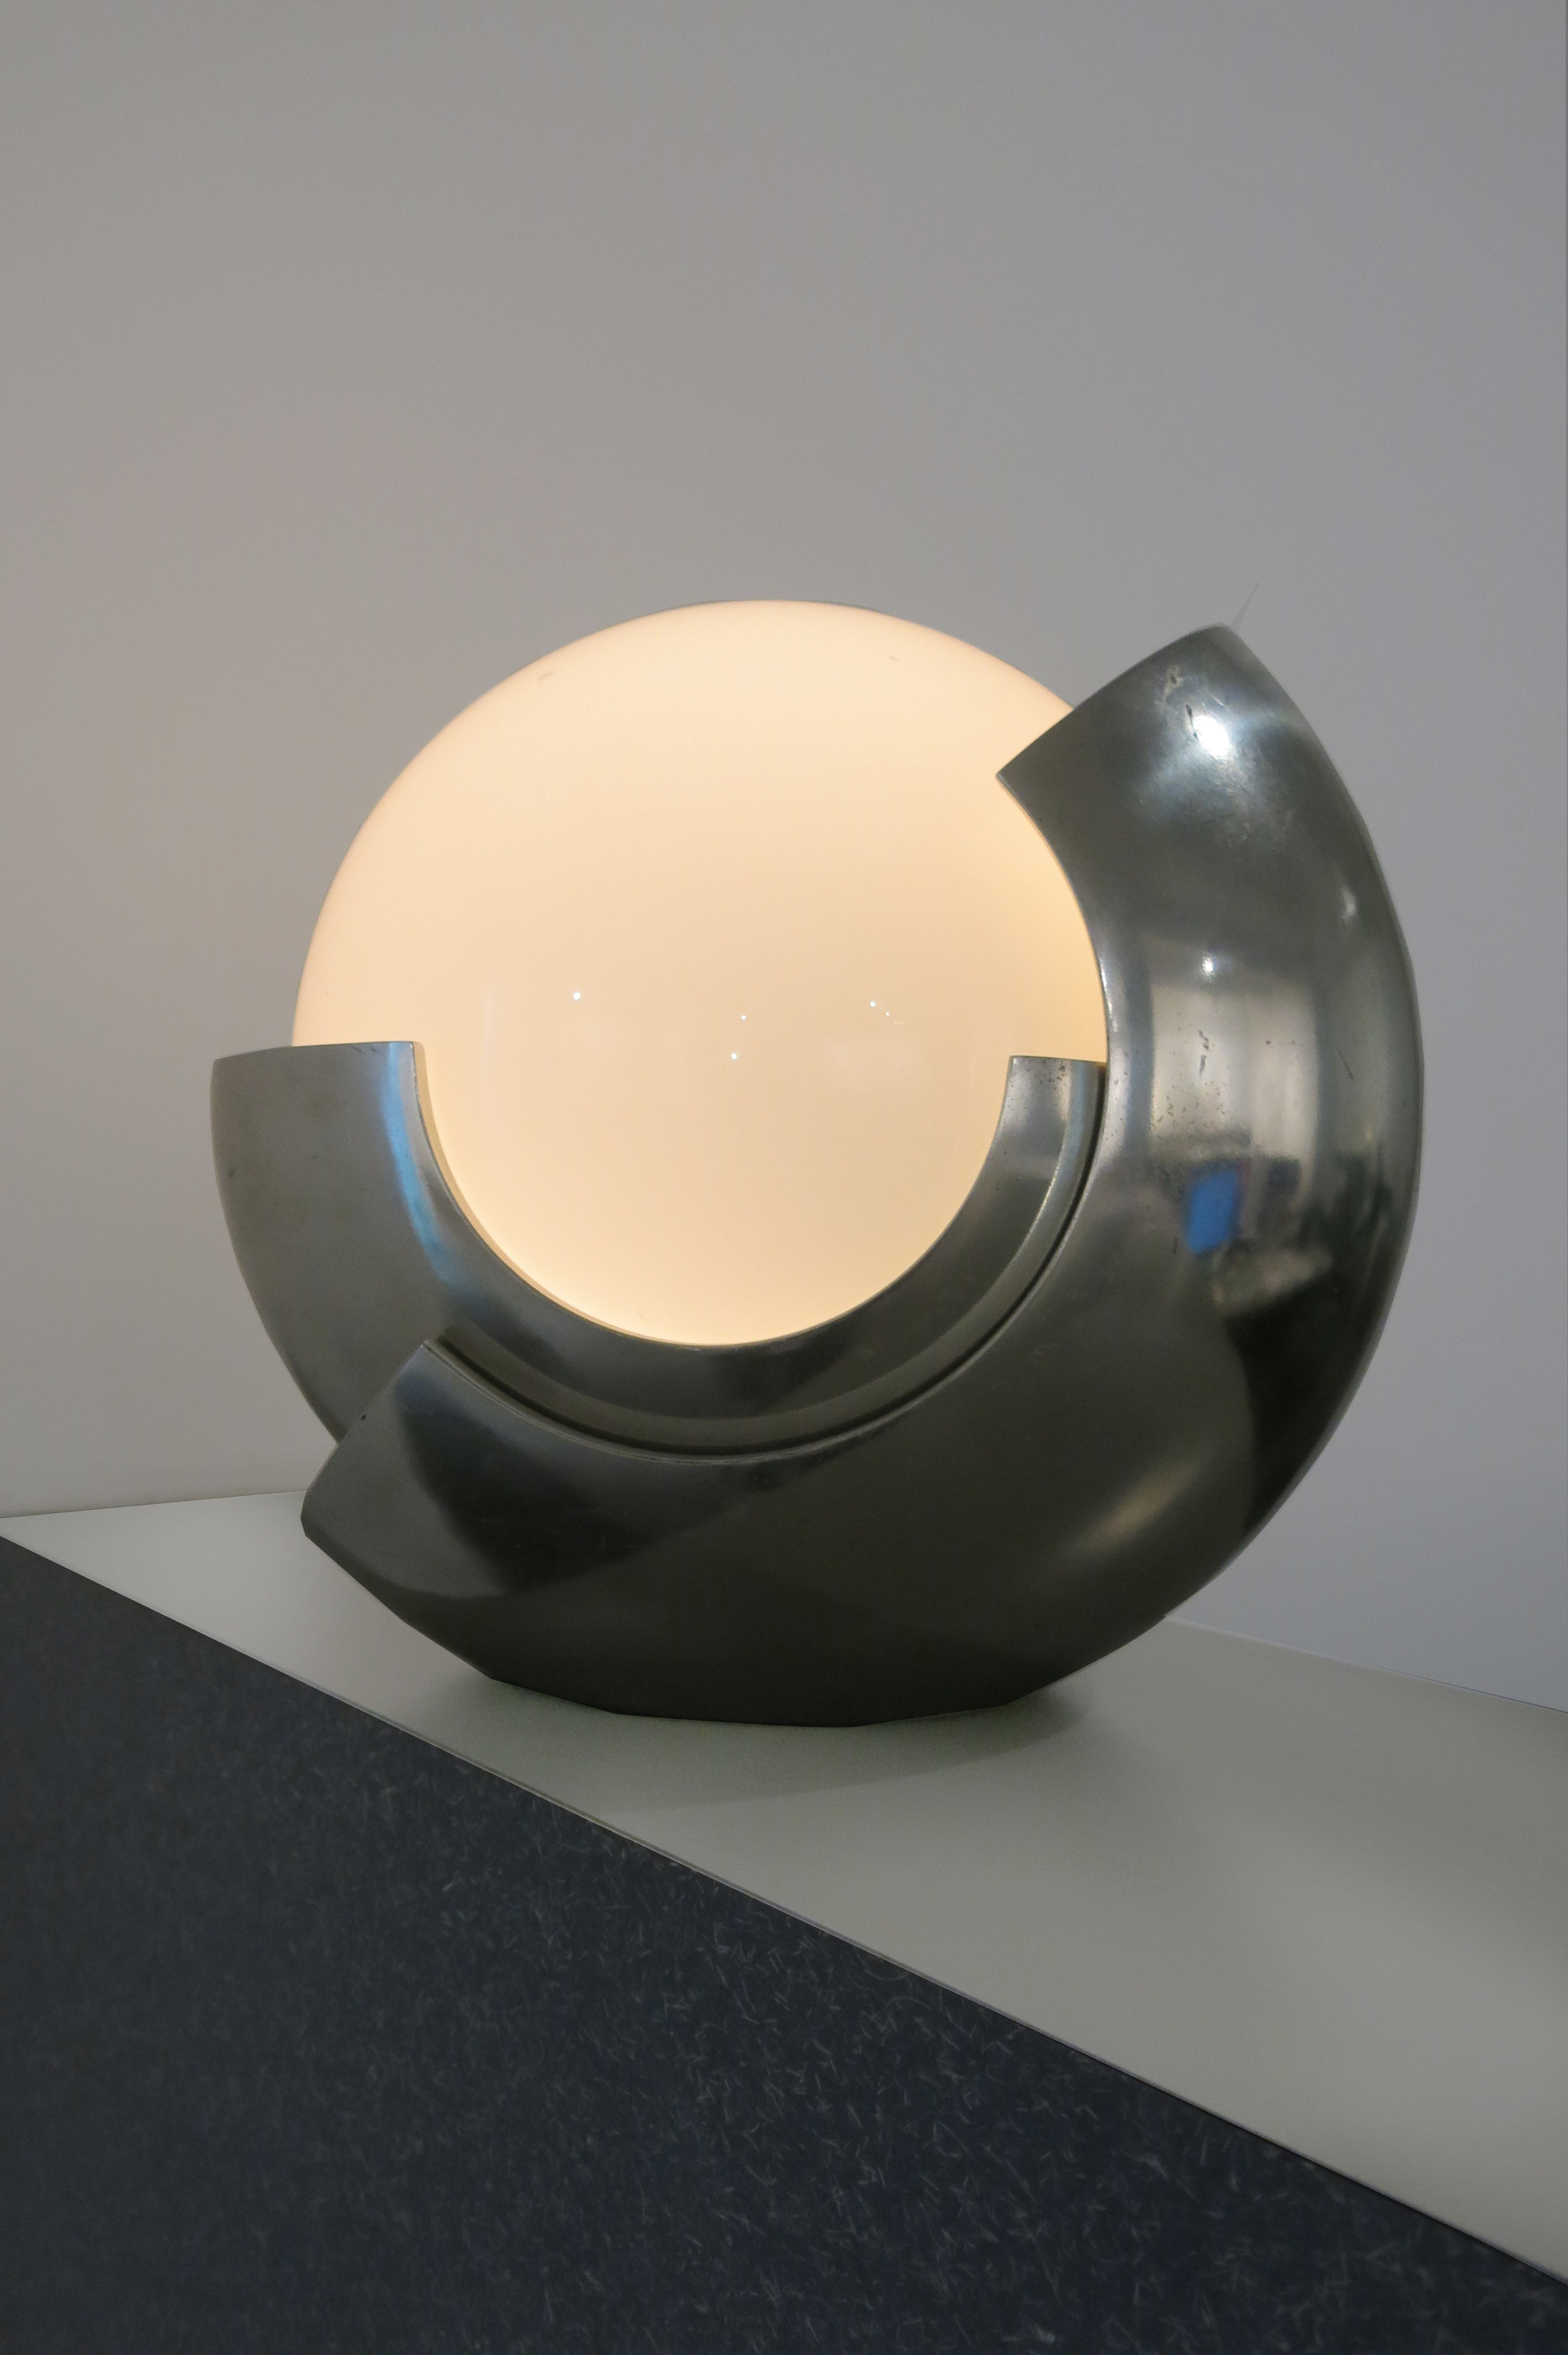 Maison Bagues,  Moon Lamp (Globe),  France, c. 1960s, steel chrome, pate de verre, 13.5h x 13.5w x 11d in.